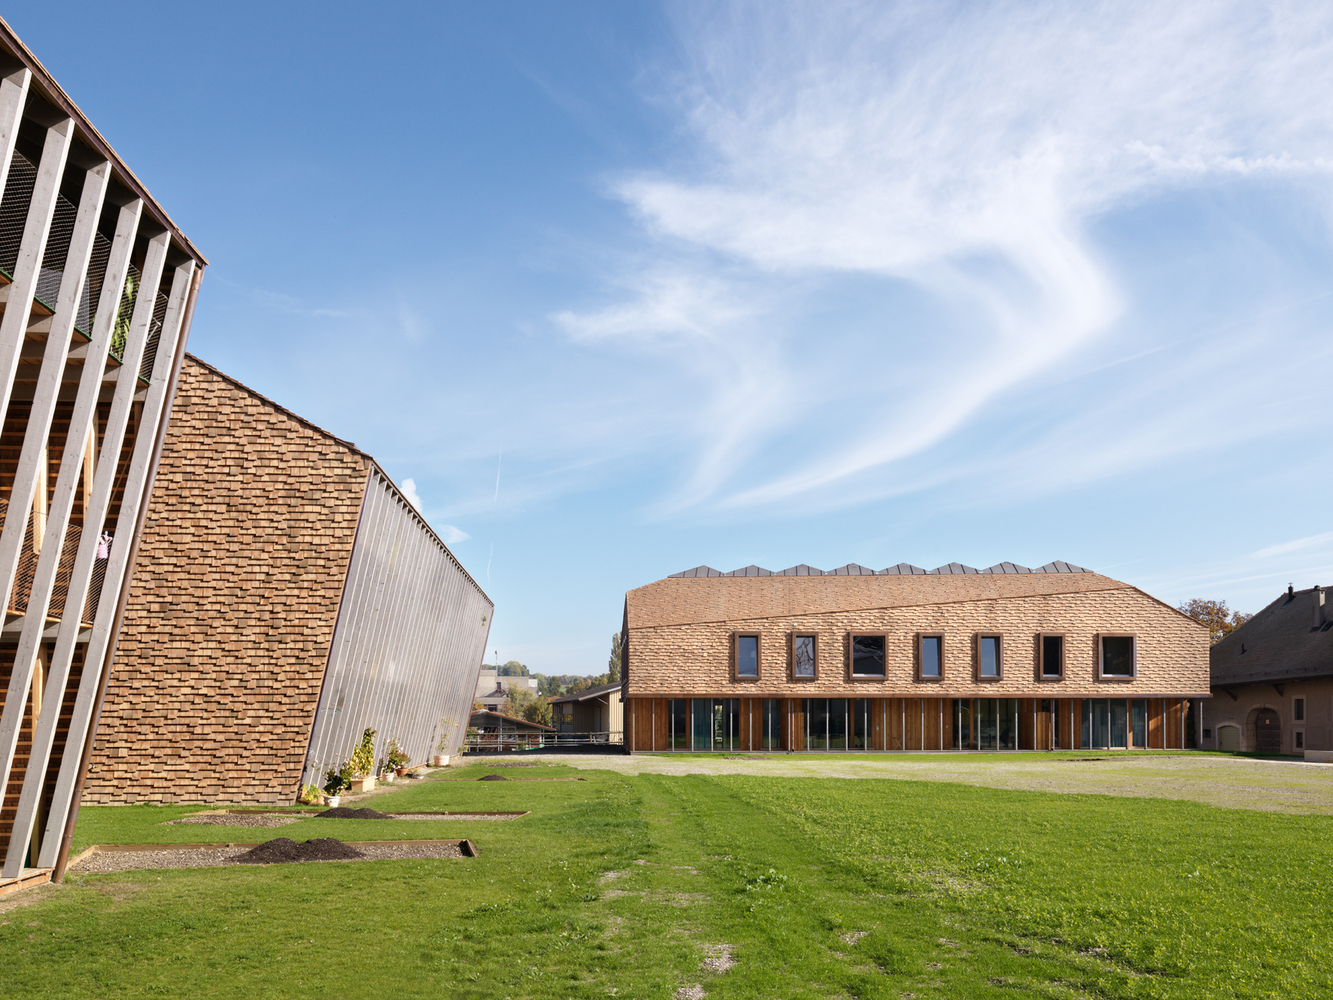 Two Residential Buildings A Boarding School And An Activity Centre David Gagnebin